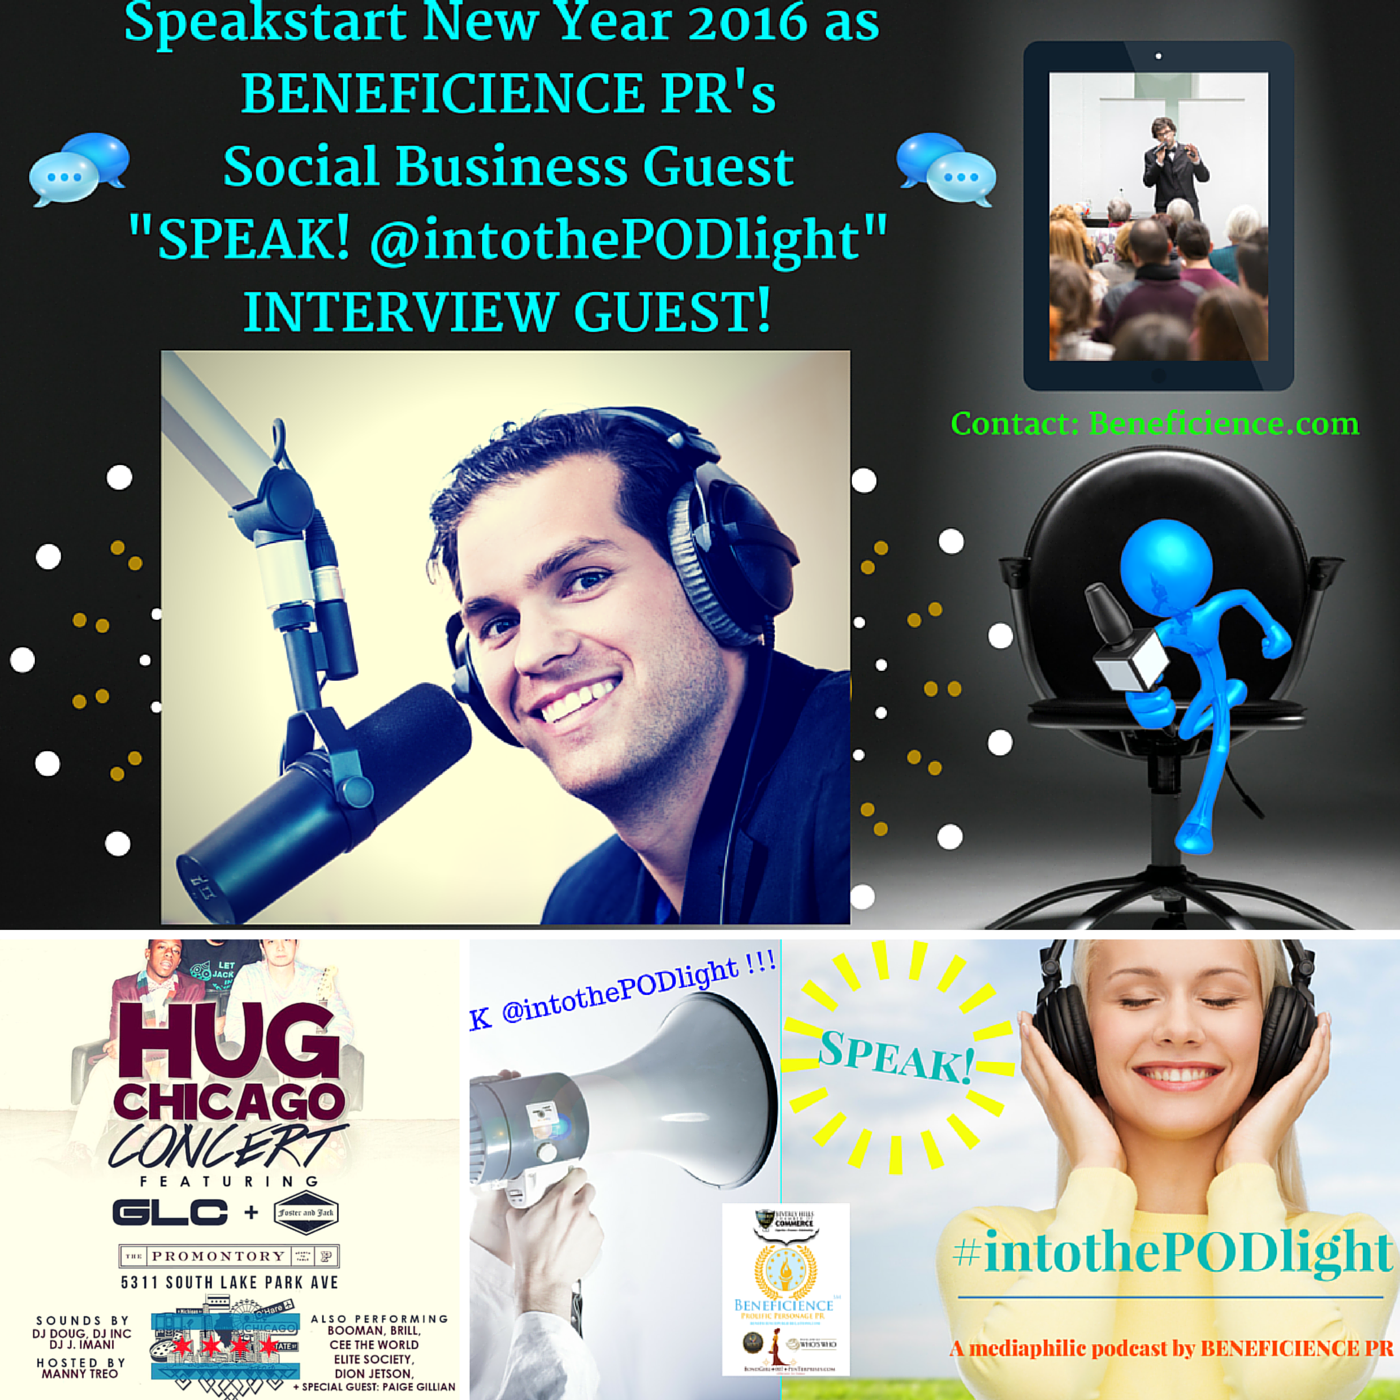 SPEAK! #intothepodlight – A mediaphilic podcast hosted by Tracey Bond – Beneficience.com PR Featuring- Paige Gillian Chicago Voicestress PErforming at The Promontory Tonight @5pm for #HUGChicago CampaignJanuary